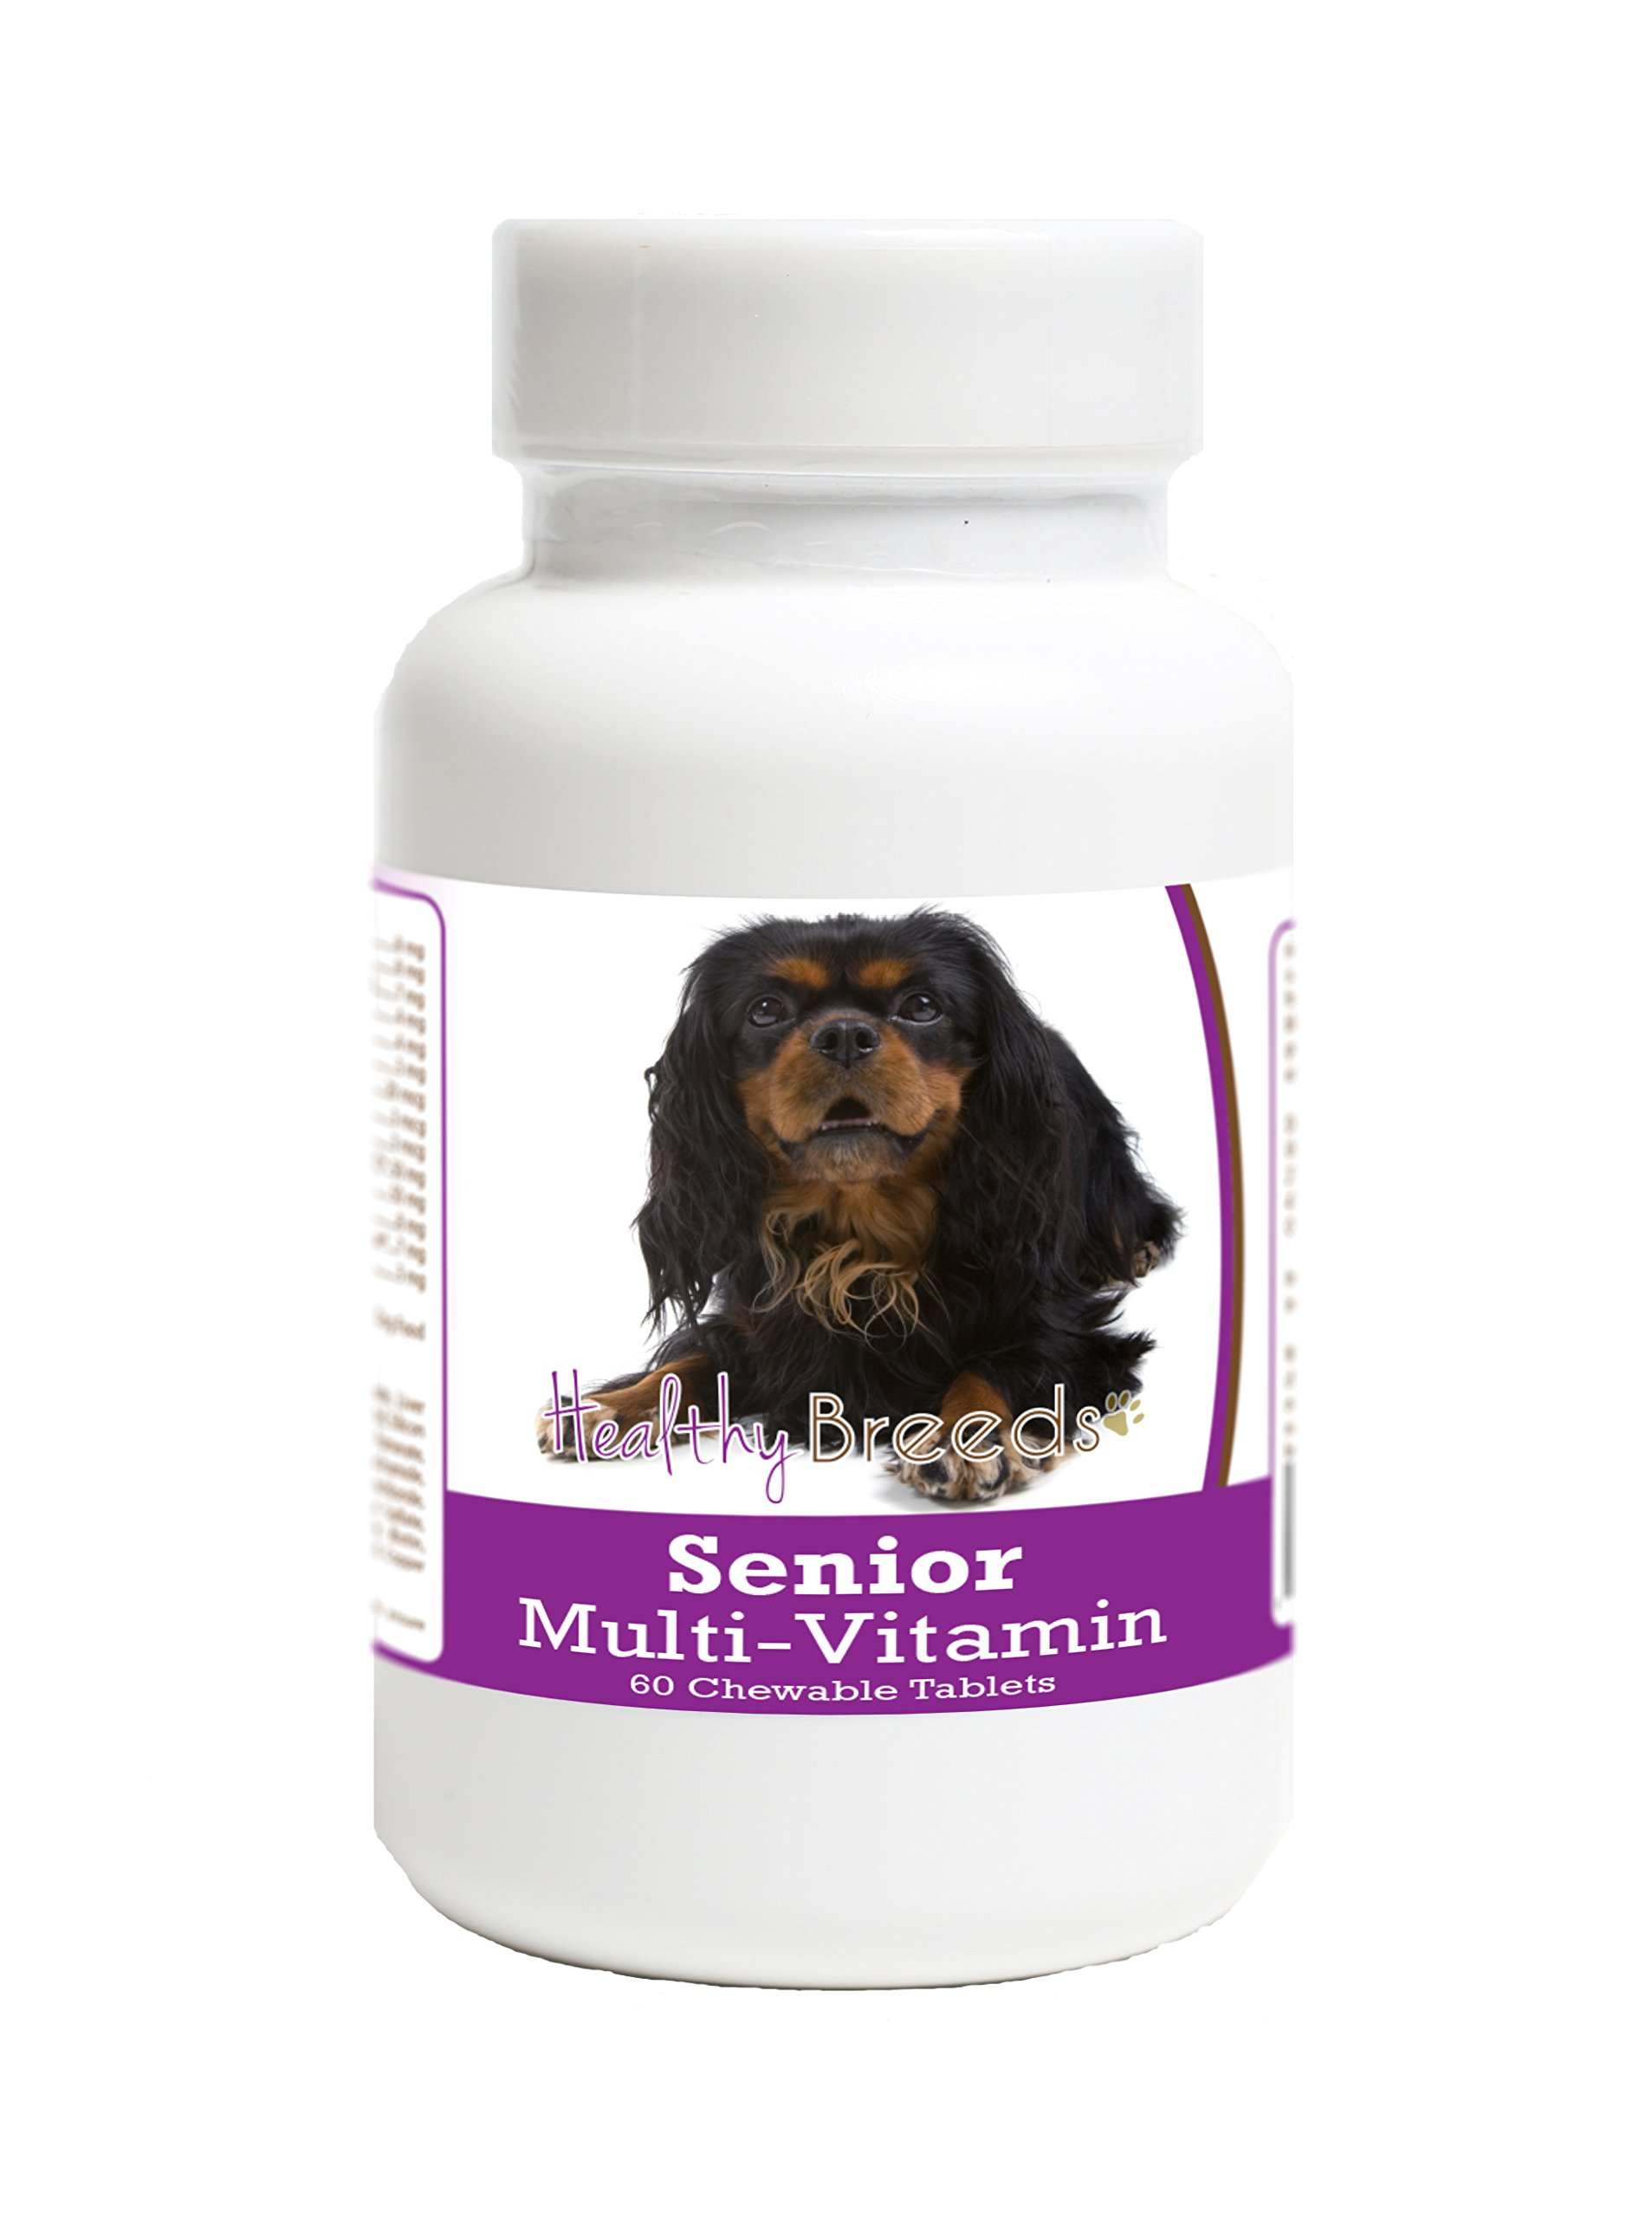 Healthy Breeds Senior Dog Supplement for English Toy Spaniel - Over 200 Breeds - Veterinarian Formulated Daily Dietary Chewable Tablet - 60 Chews by Healthy Breeds (Image #1)